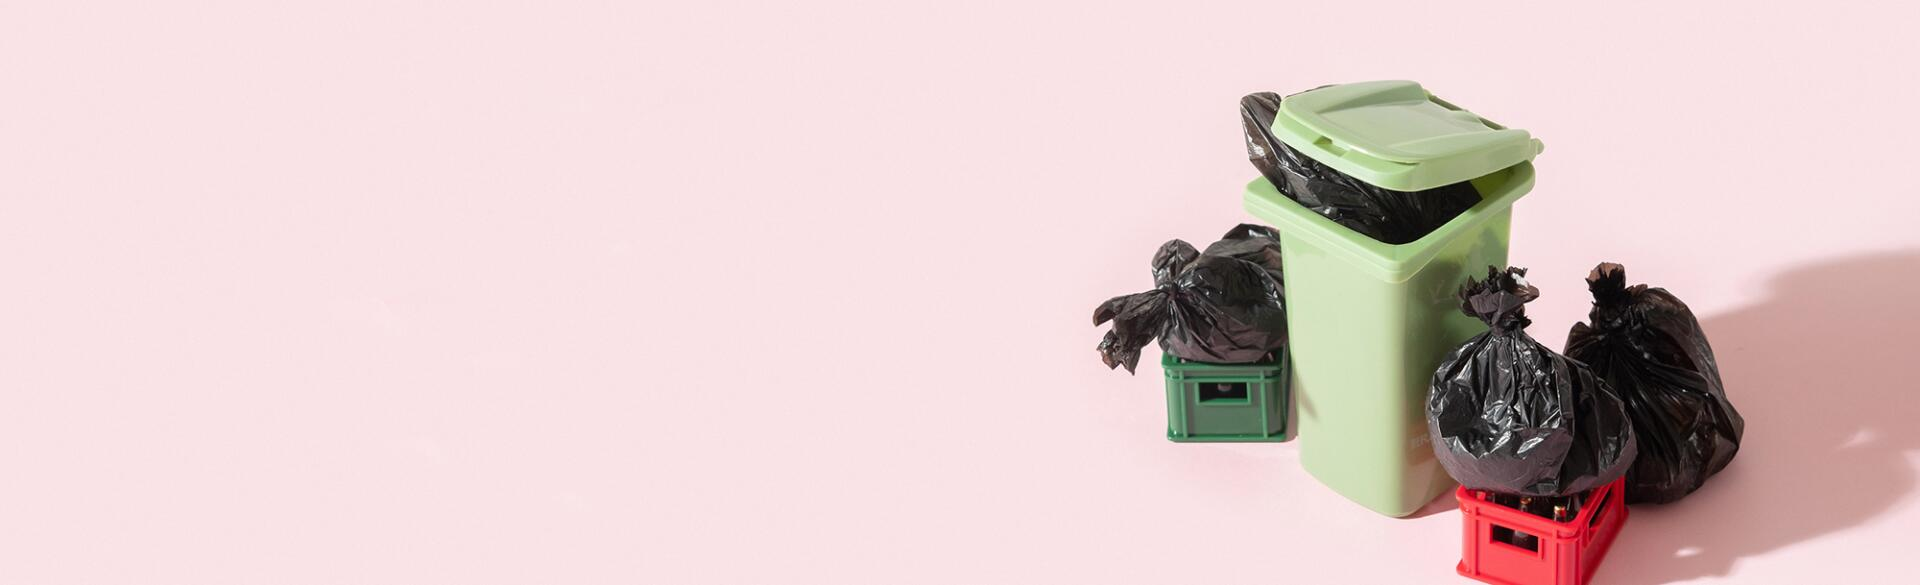 Garbage can, trash and recycling on pink background